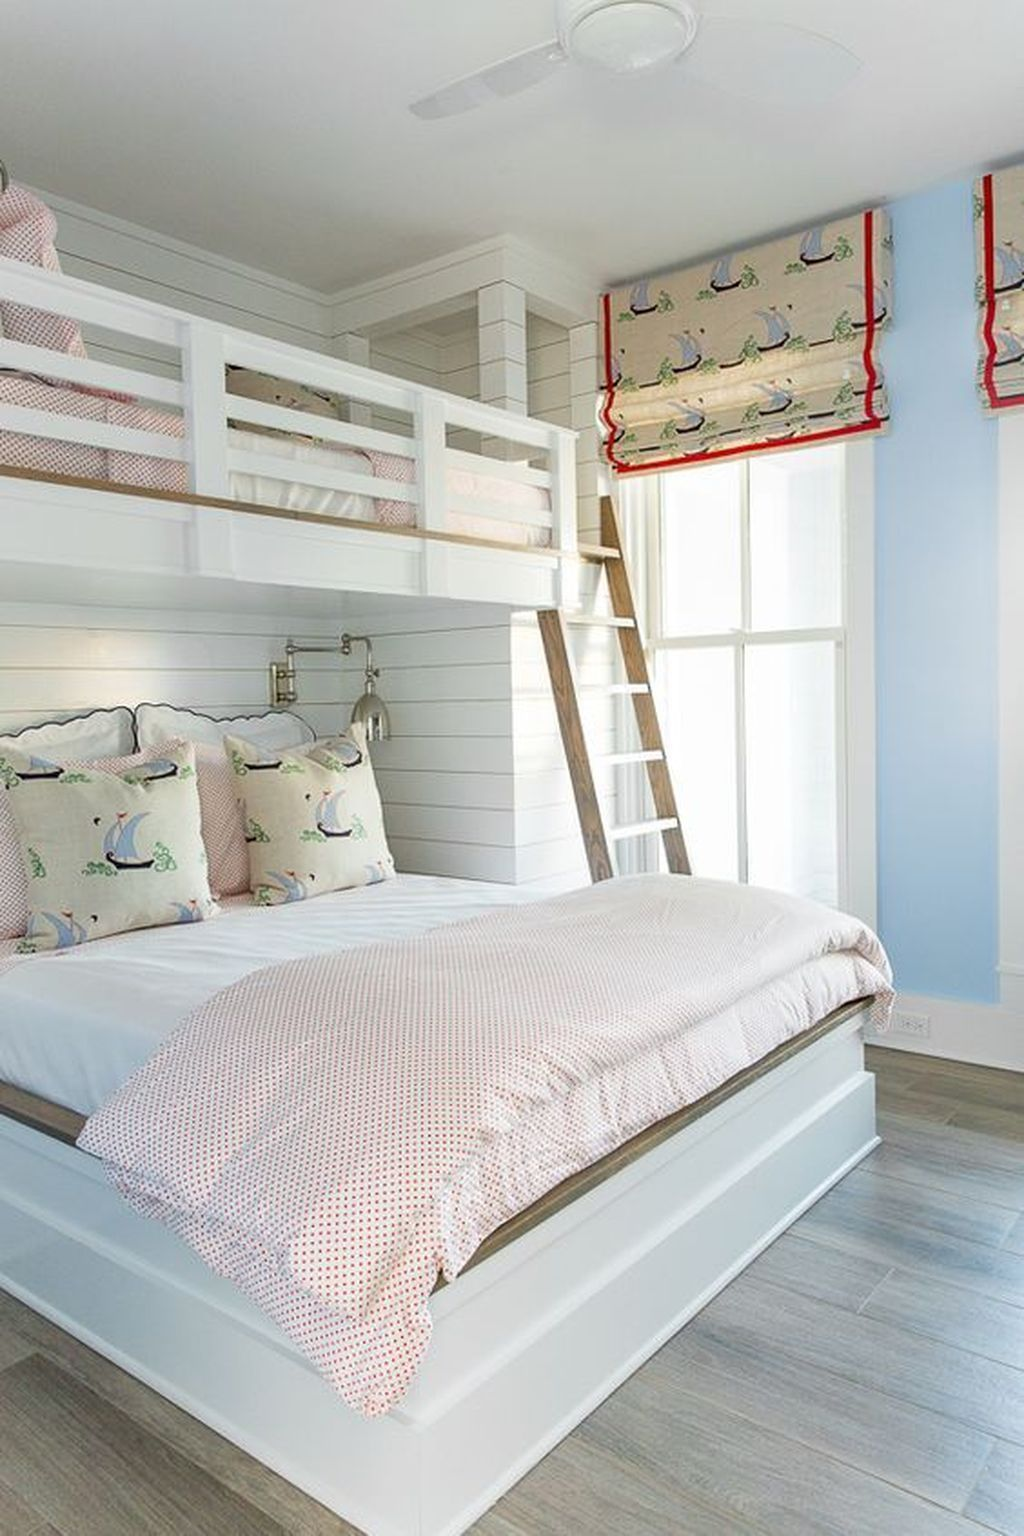 Cool And Elegant Beach Themed Bedroom Decoration Ideas30 Bunk Bed Designs Coastal Living Rooms Home Bedroom